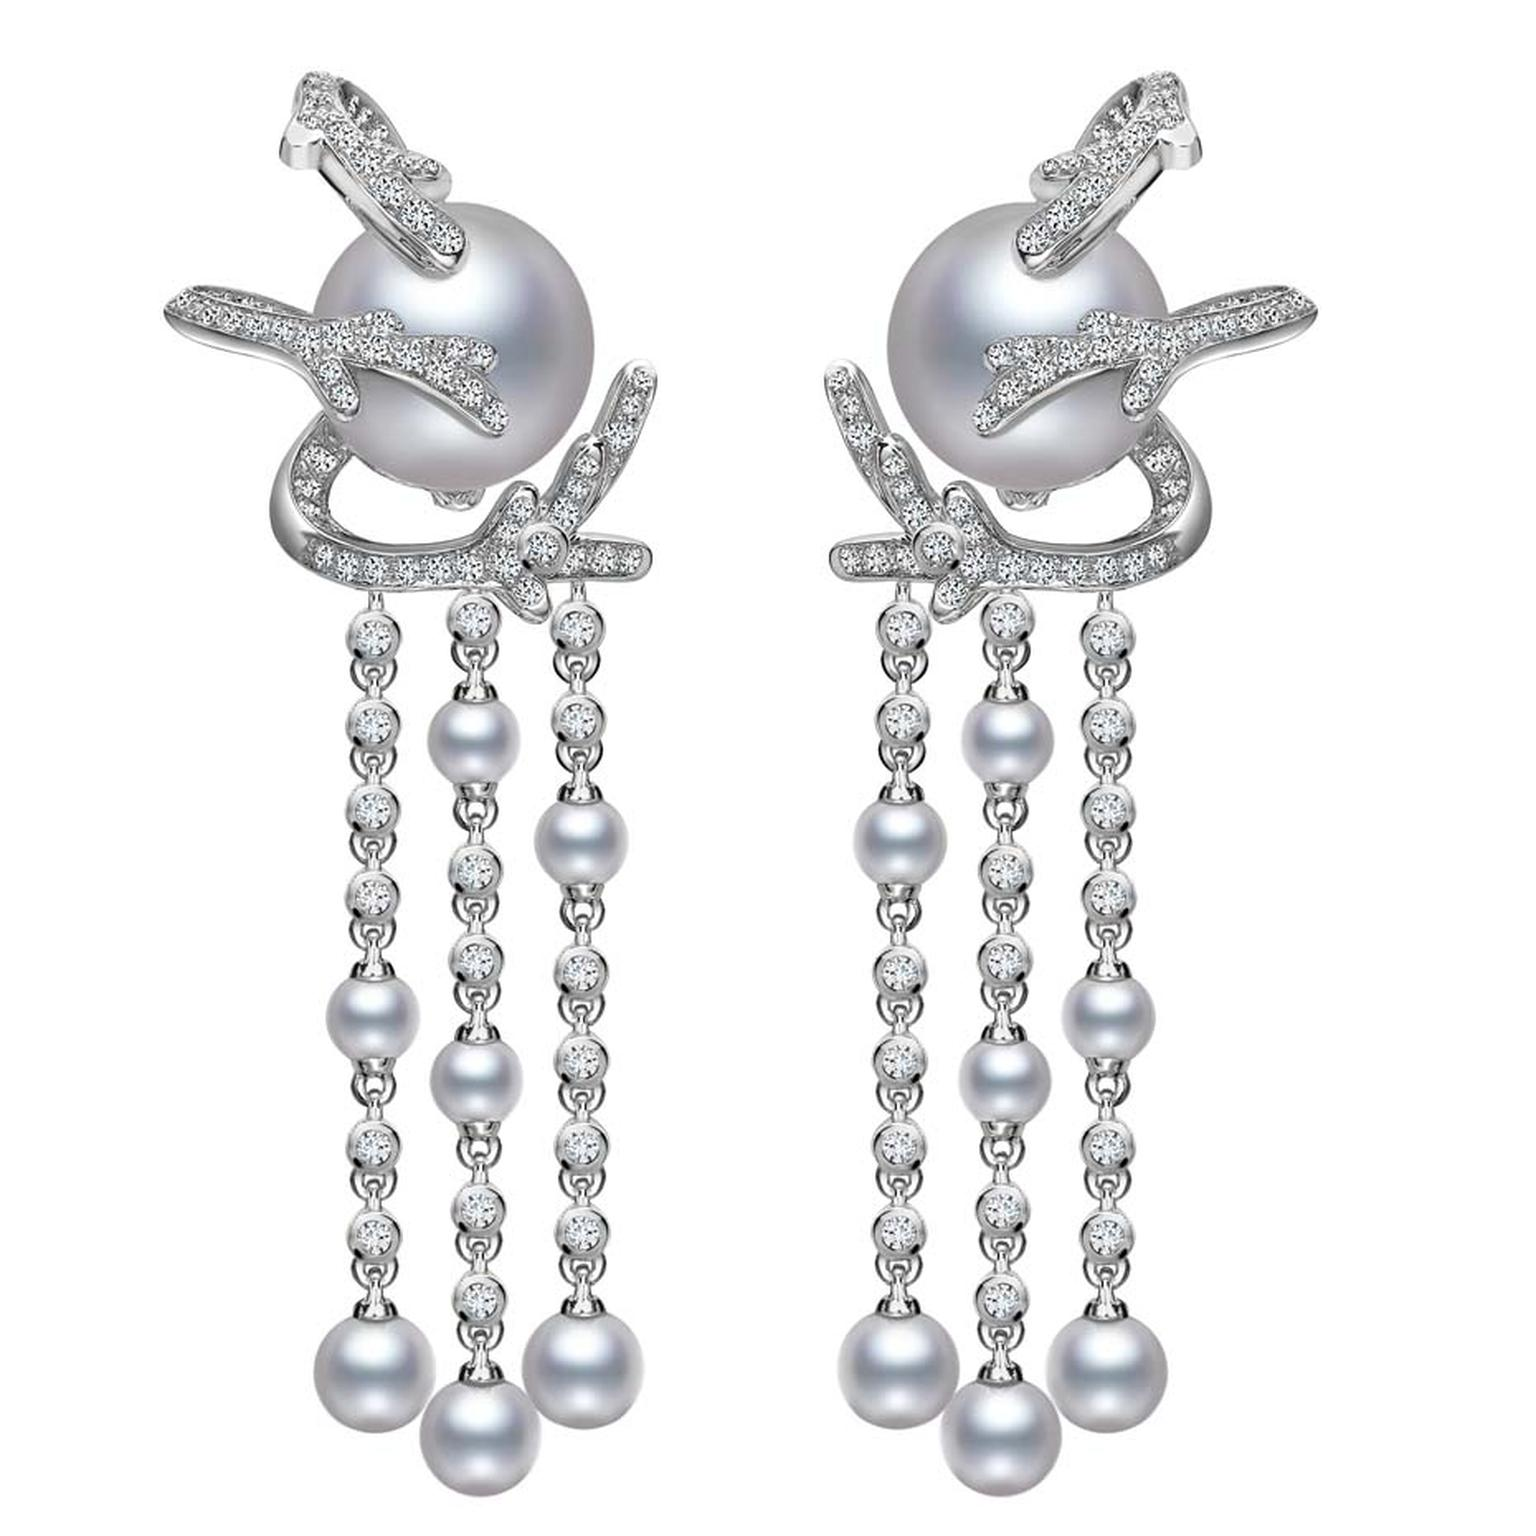 Mikimoto Regalia Collection Coral chandelier earrings featuring baroque South Sea pearls and diamonds in white gold